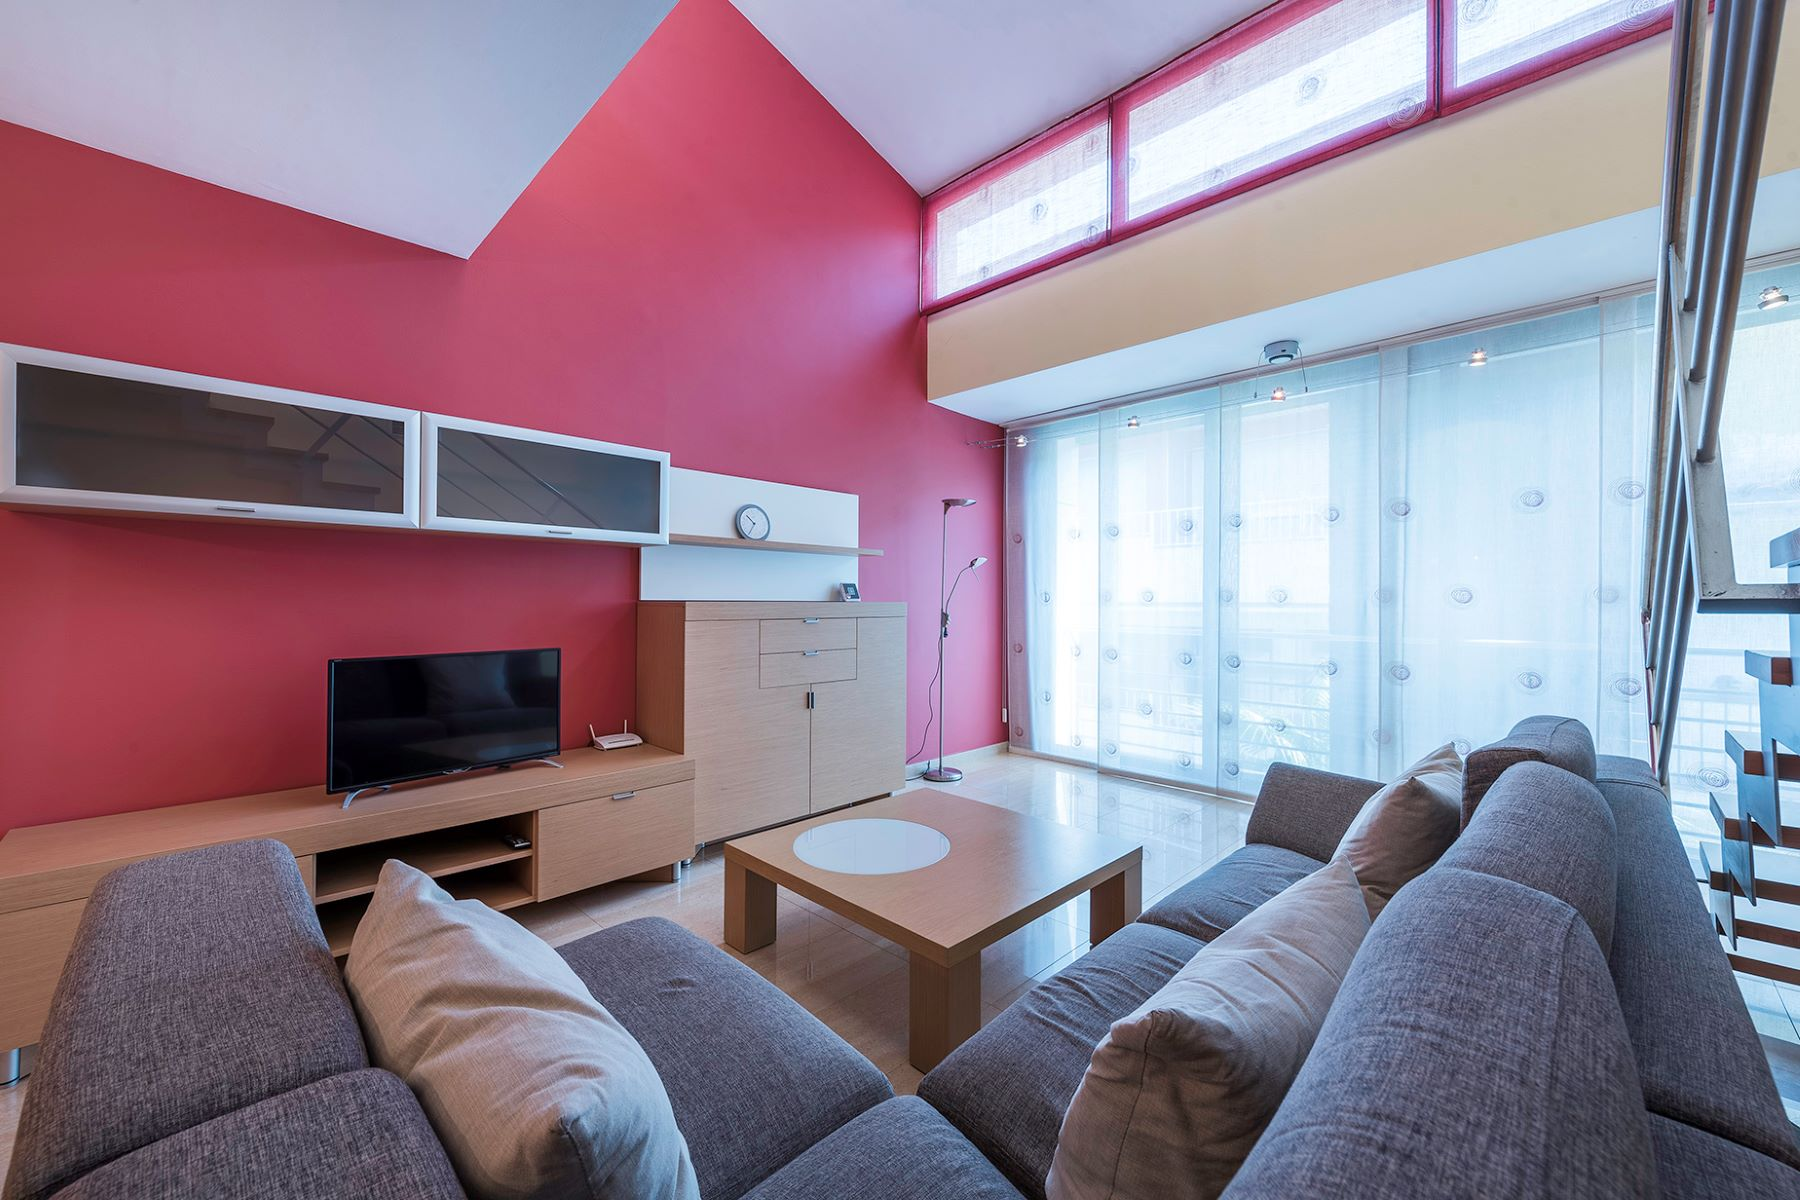 Apartment for Sale at Centrally located duplex penthouse for sale 150 m from the beach of Playa de Aro Platja D Aro, Costa Brava 17250 Spain